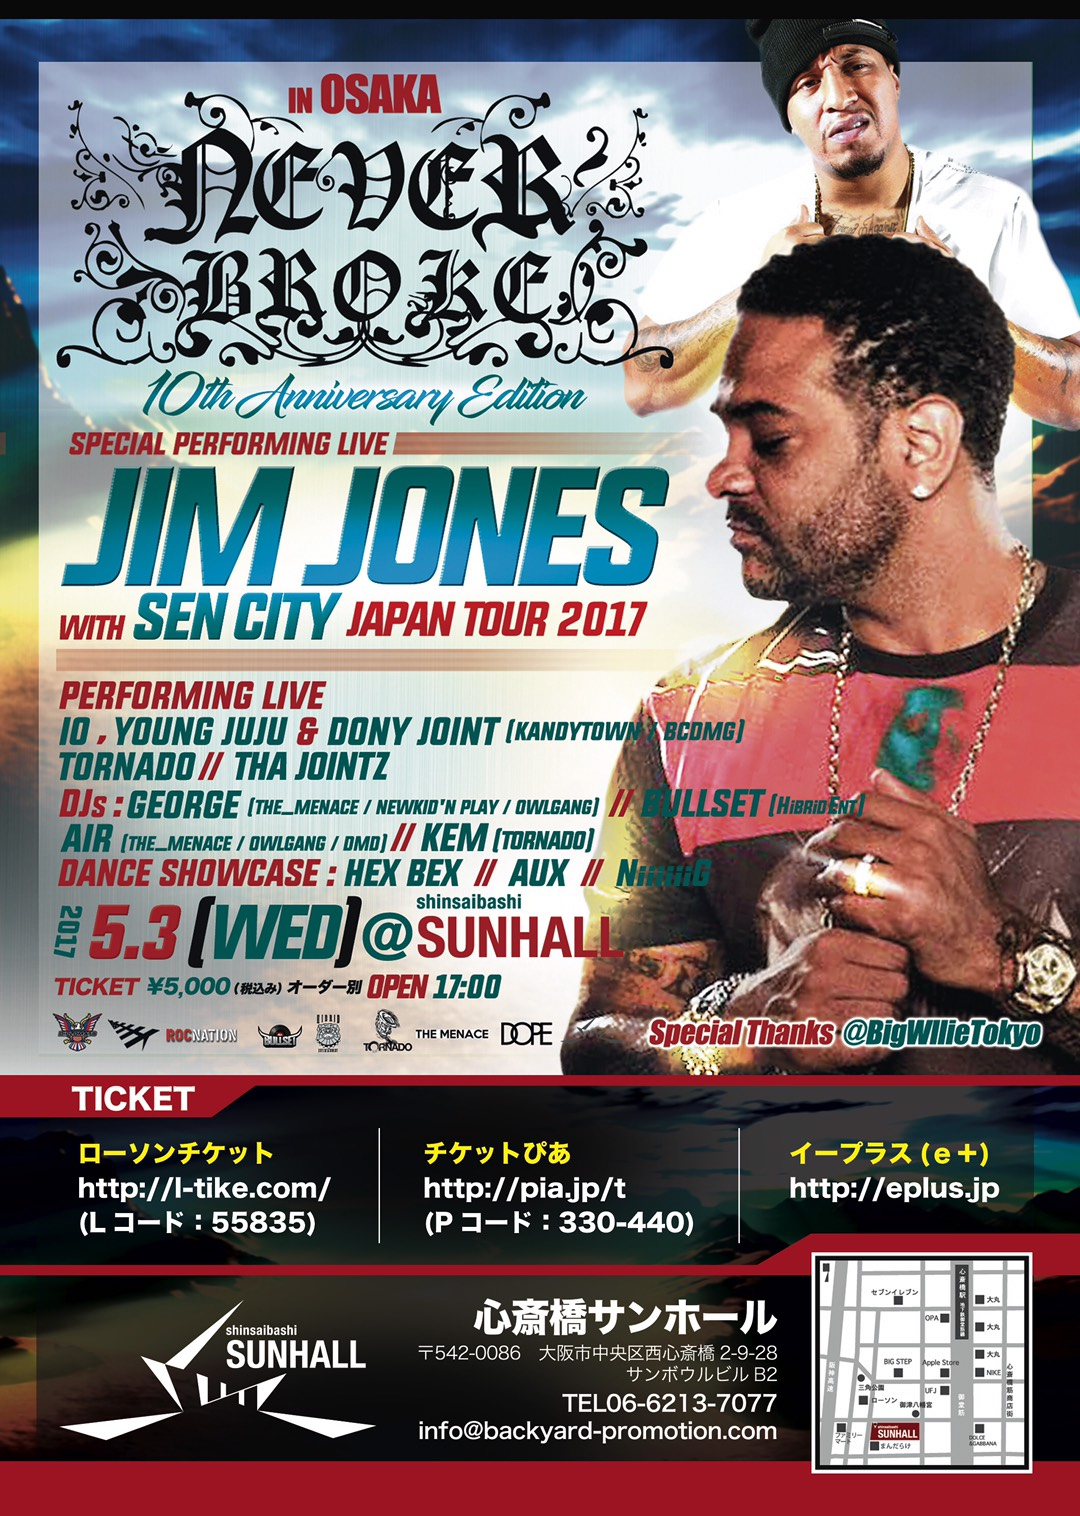 NEVER BROKE IN OSAKA 〜Jim Jones JAPAN TOUR 2017〜